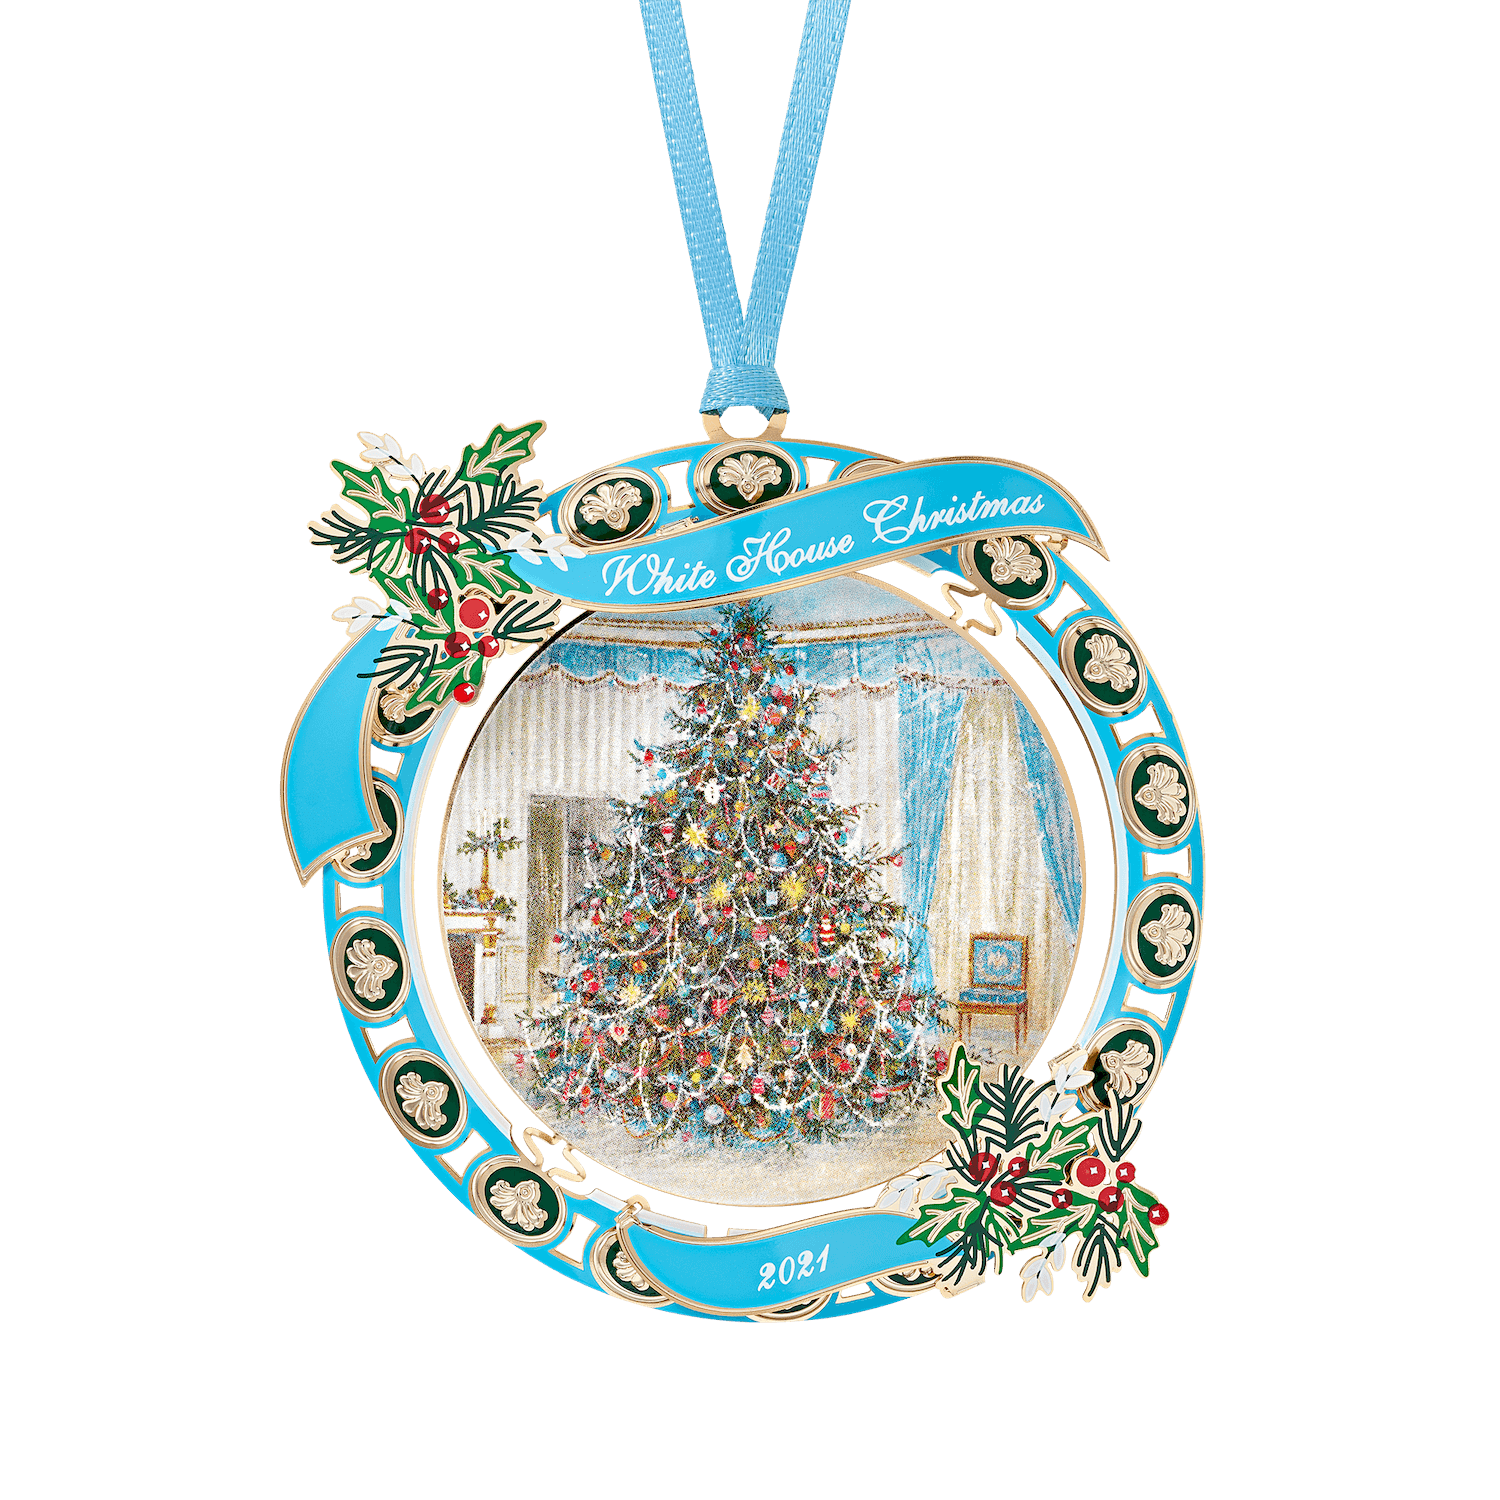 Take a Look at the White House's 2021 Christmas Ornament - Our Community Now at Colorado